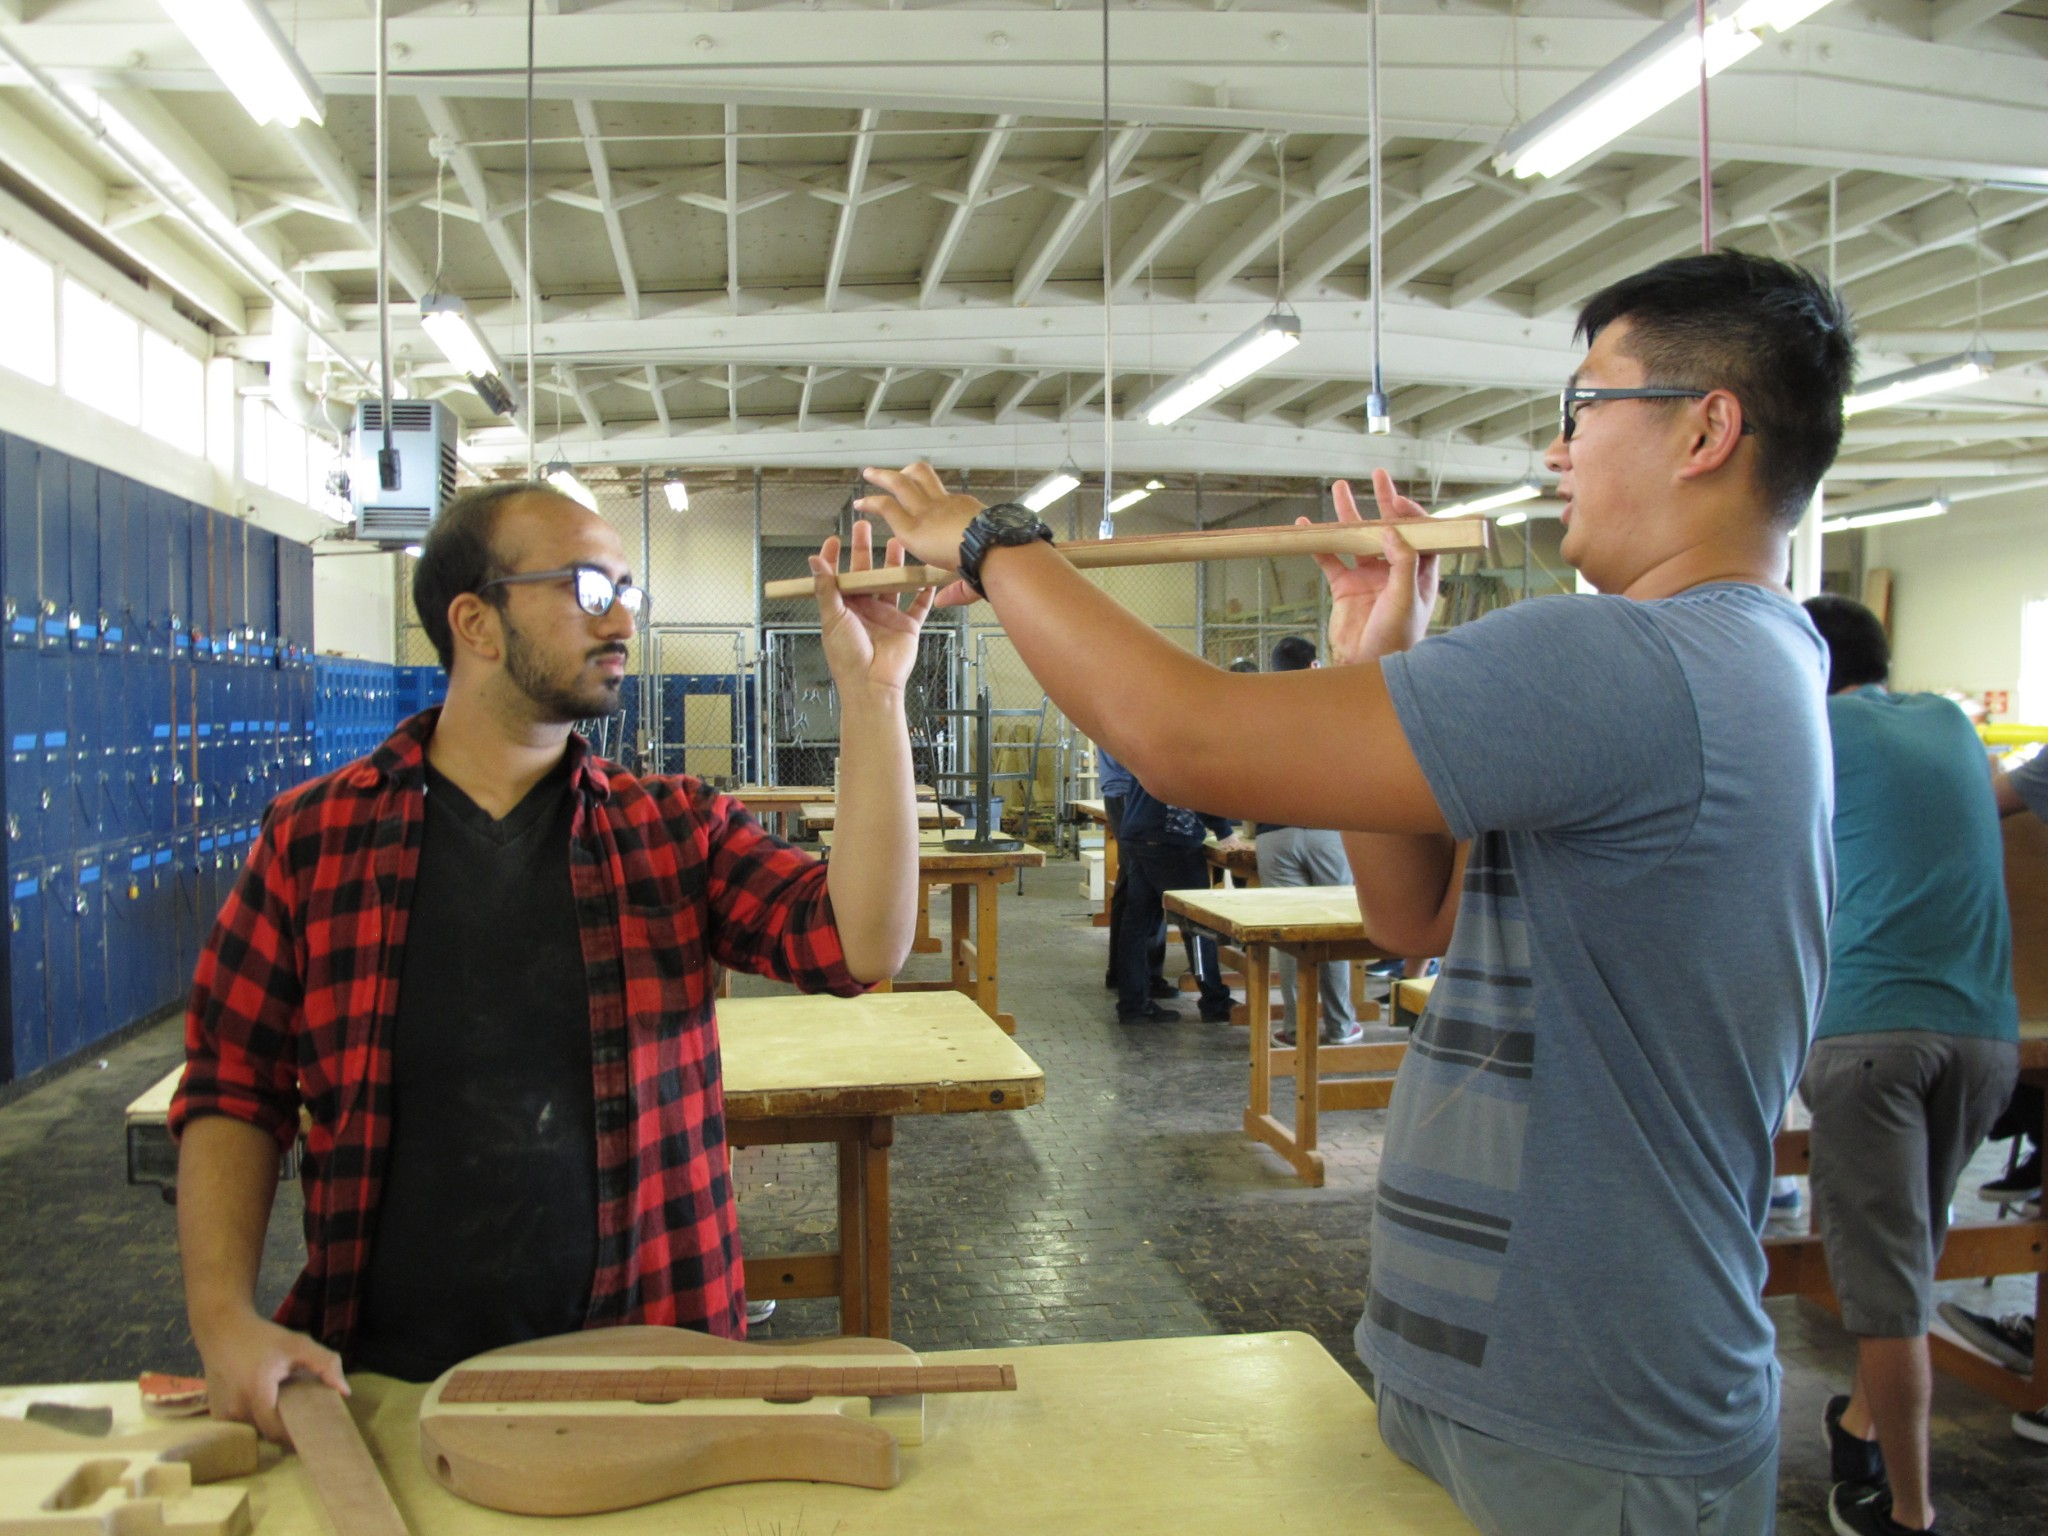 Senior Timothy Lee (right) checks out the curve on his fret board with a little help from classmate Farhan Saleh. The two are taking wood shop and physics at Camarillo High School as part of the STEM Guitar Project.